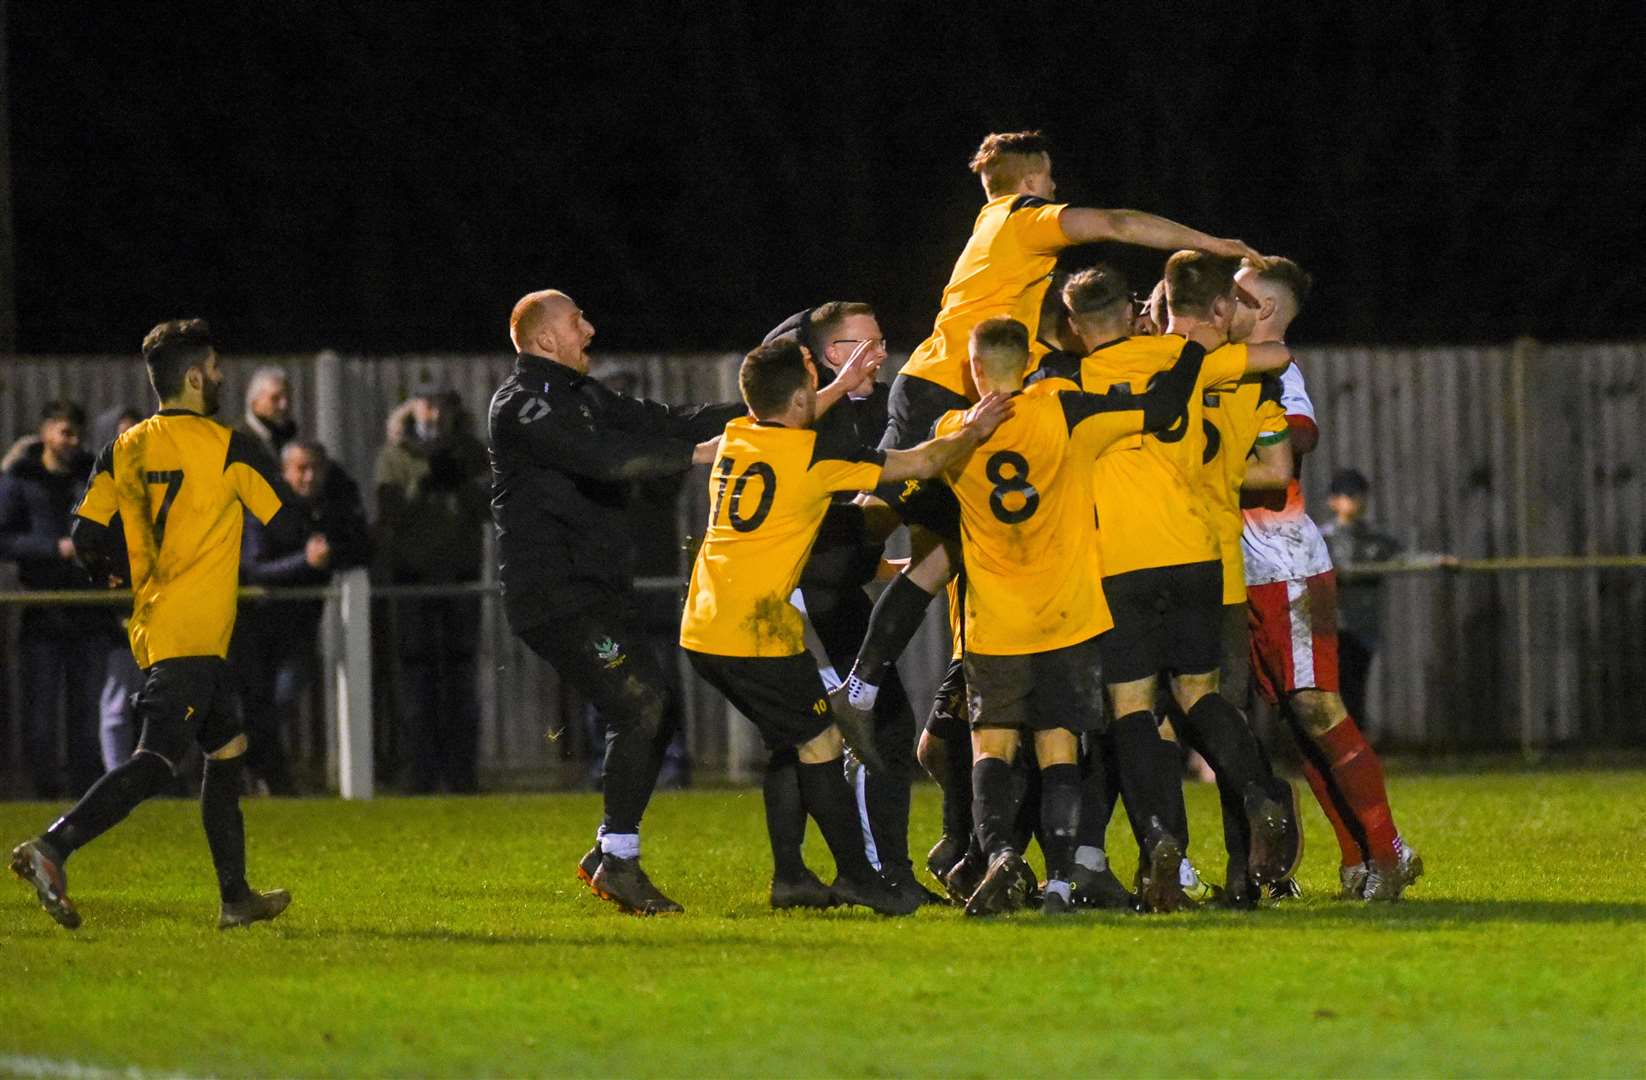 Fakenham players celebrate at the end of the game.. (43637228)